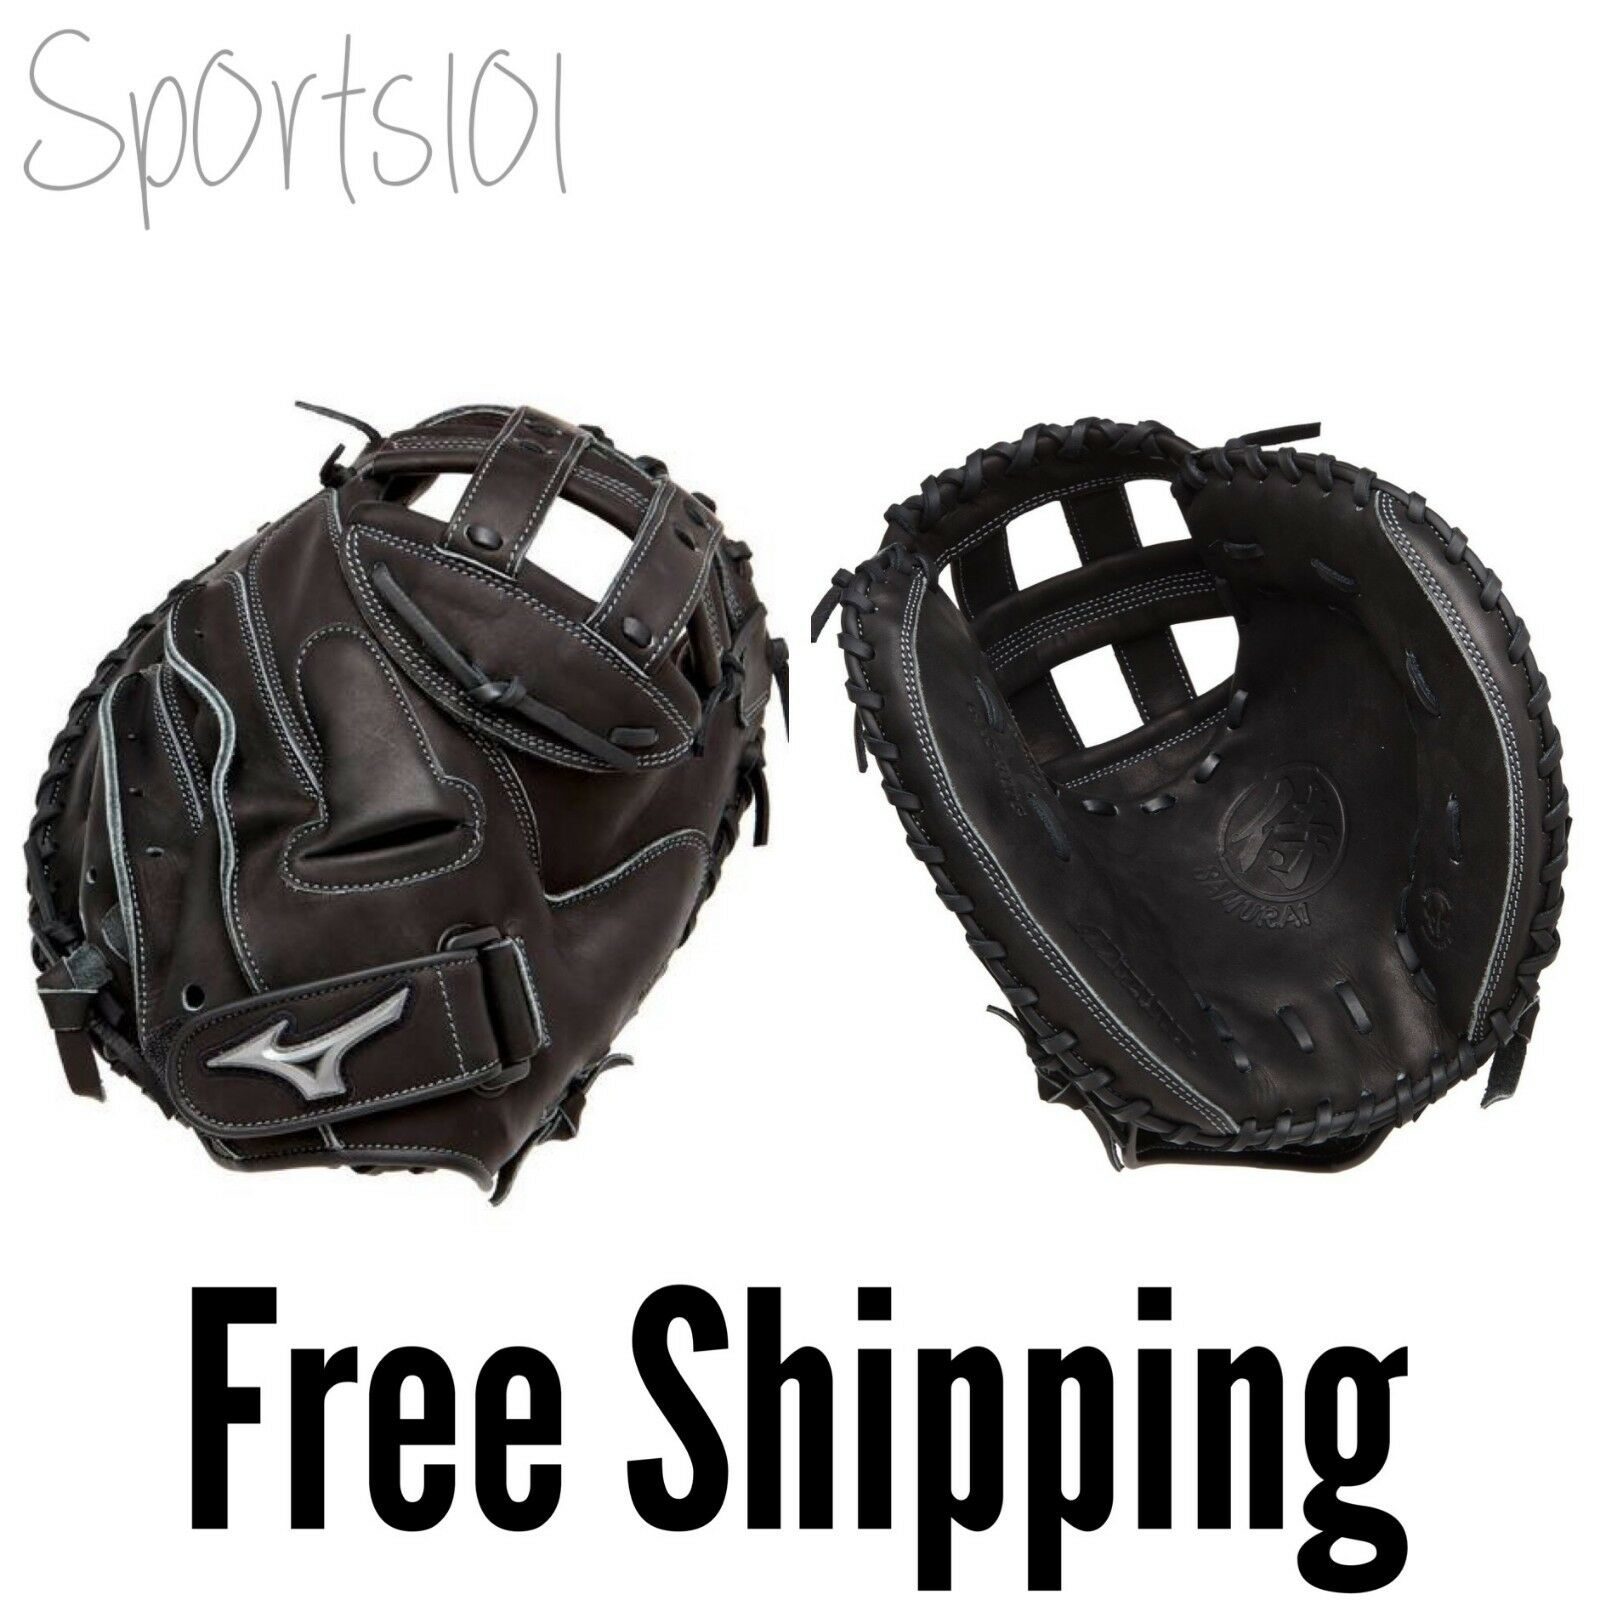 Mizuno Classic Series Samurai Fastpitch Softball Catchers Catchers Catchers Mitt 34.5  311940 5bb19f